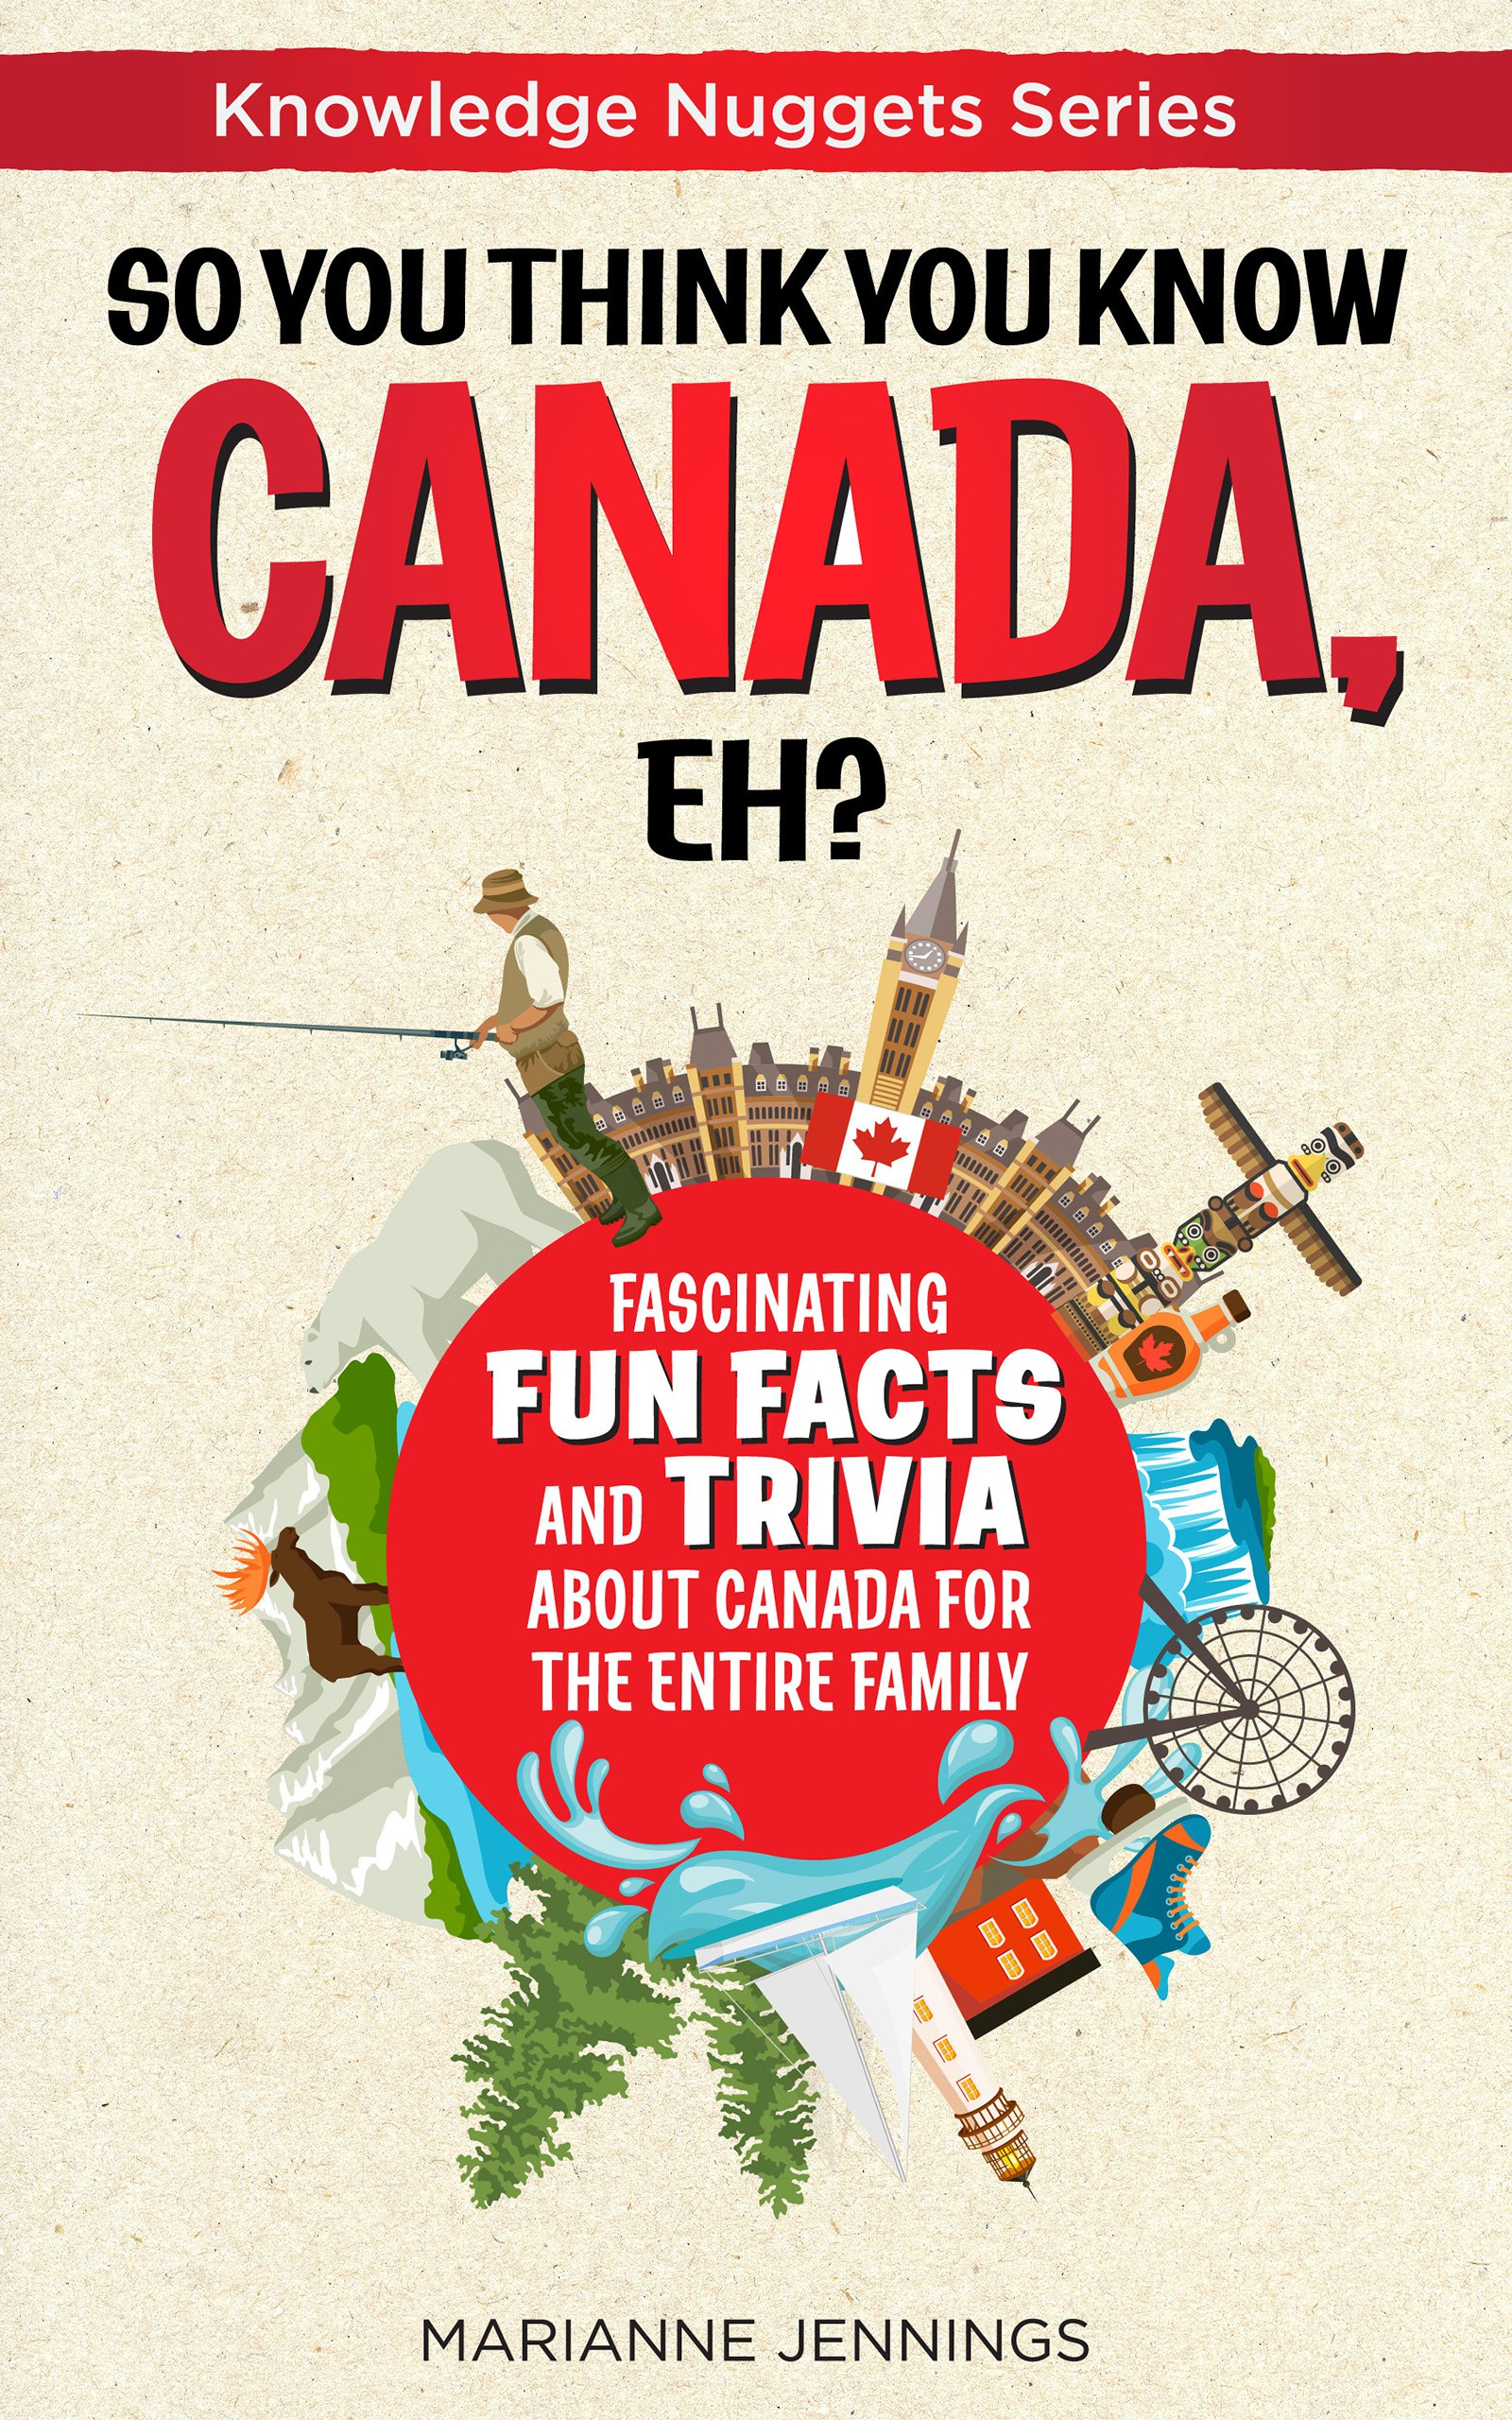 Kindle eBook cover for a fun fact and trivia book about Canada